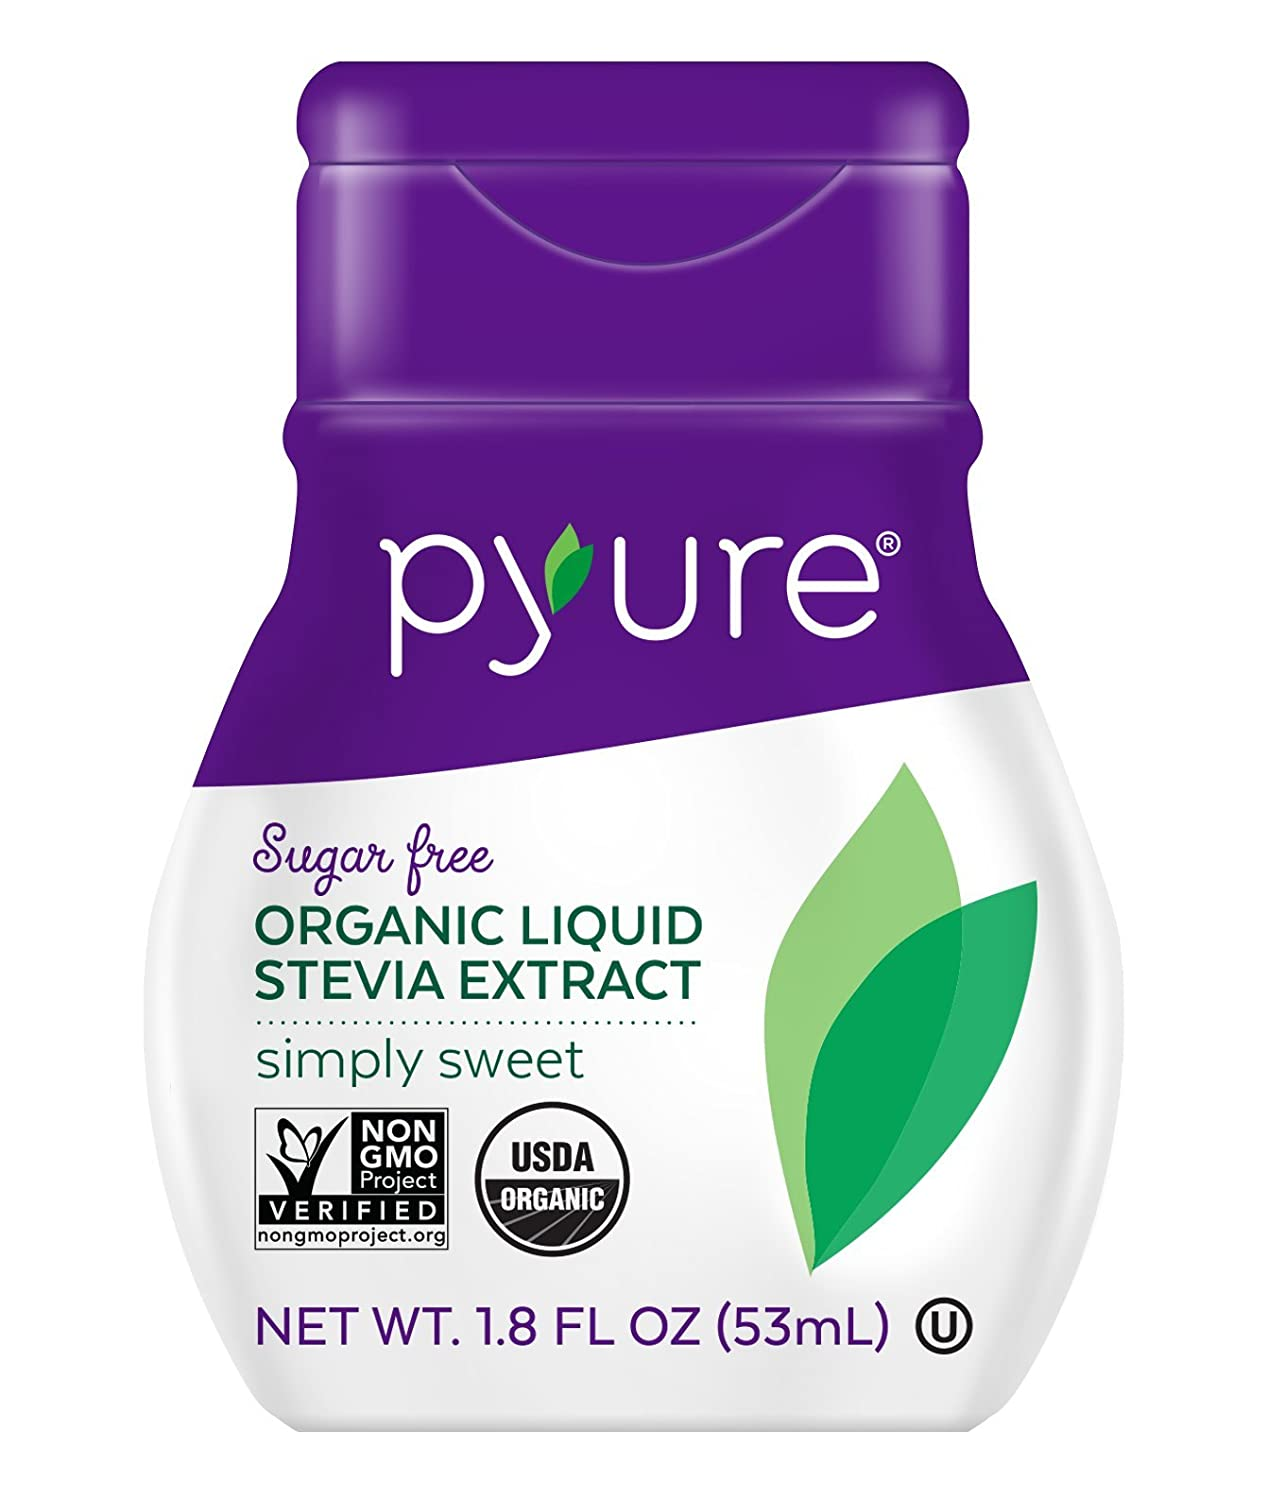 Pyure Organic Liquid Stevia Extract Sweetener, Simply Sweet, Sugar Substitute, 200 Servingsper Container, 1.8 Fl. Oz. Pack of 6